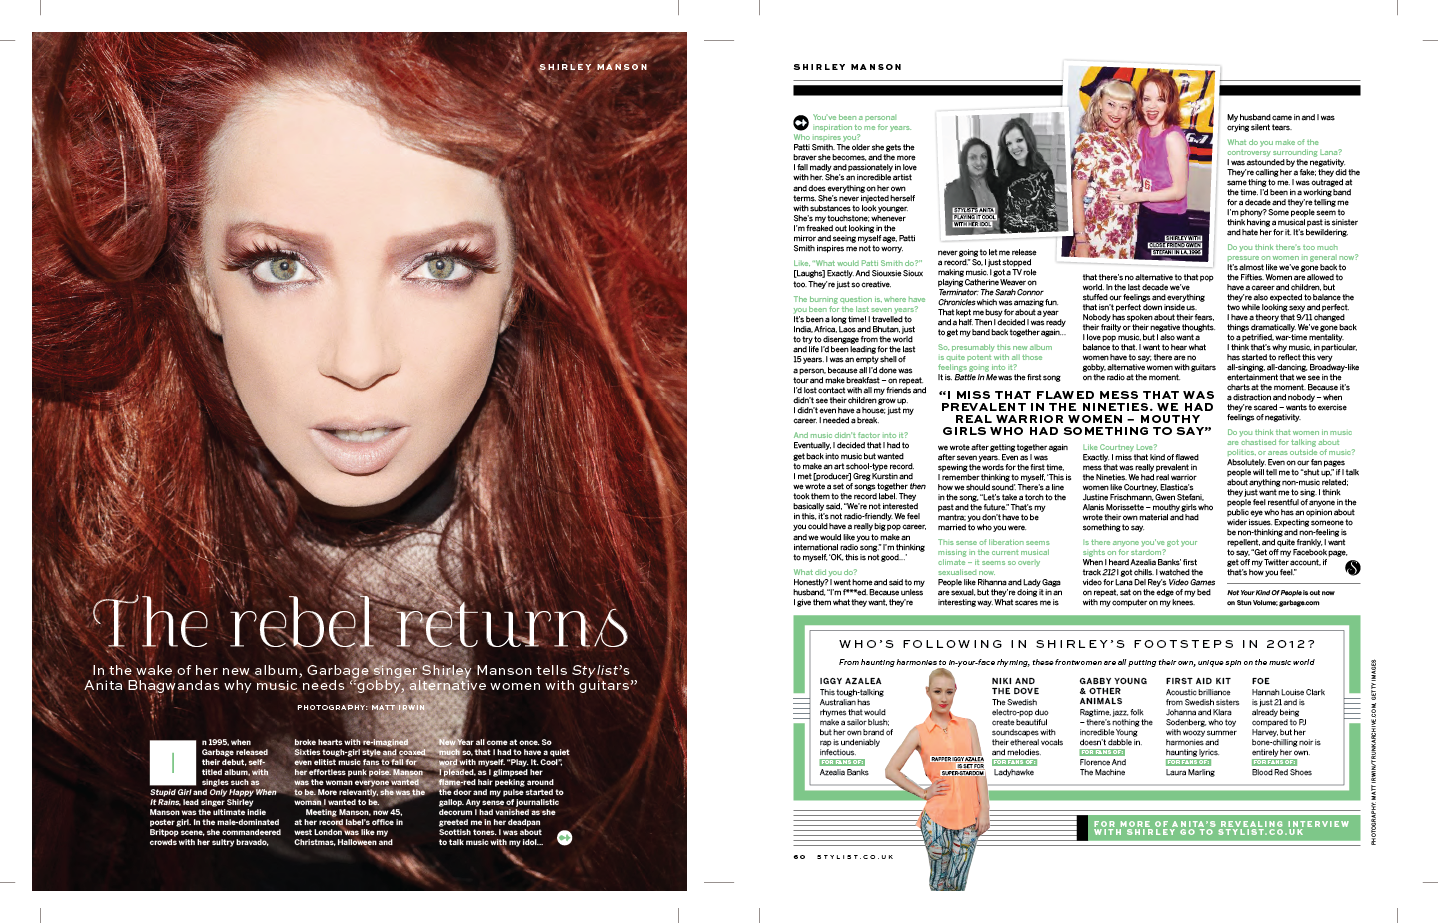 STYLIST - INTERVEIW SHIRLEY MANSON